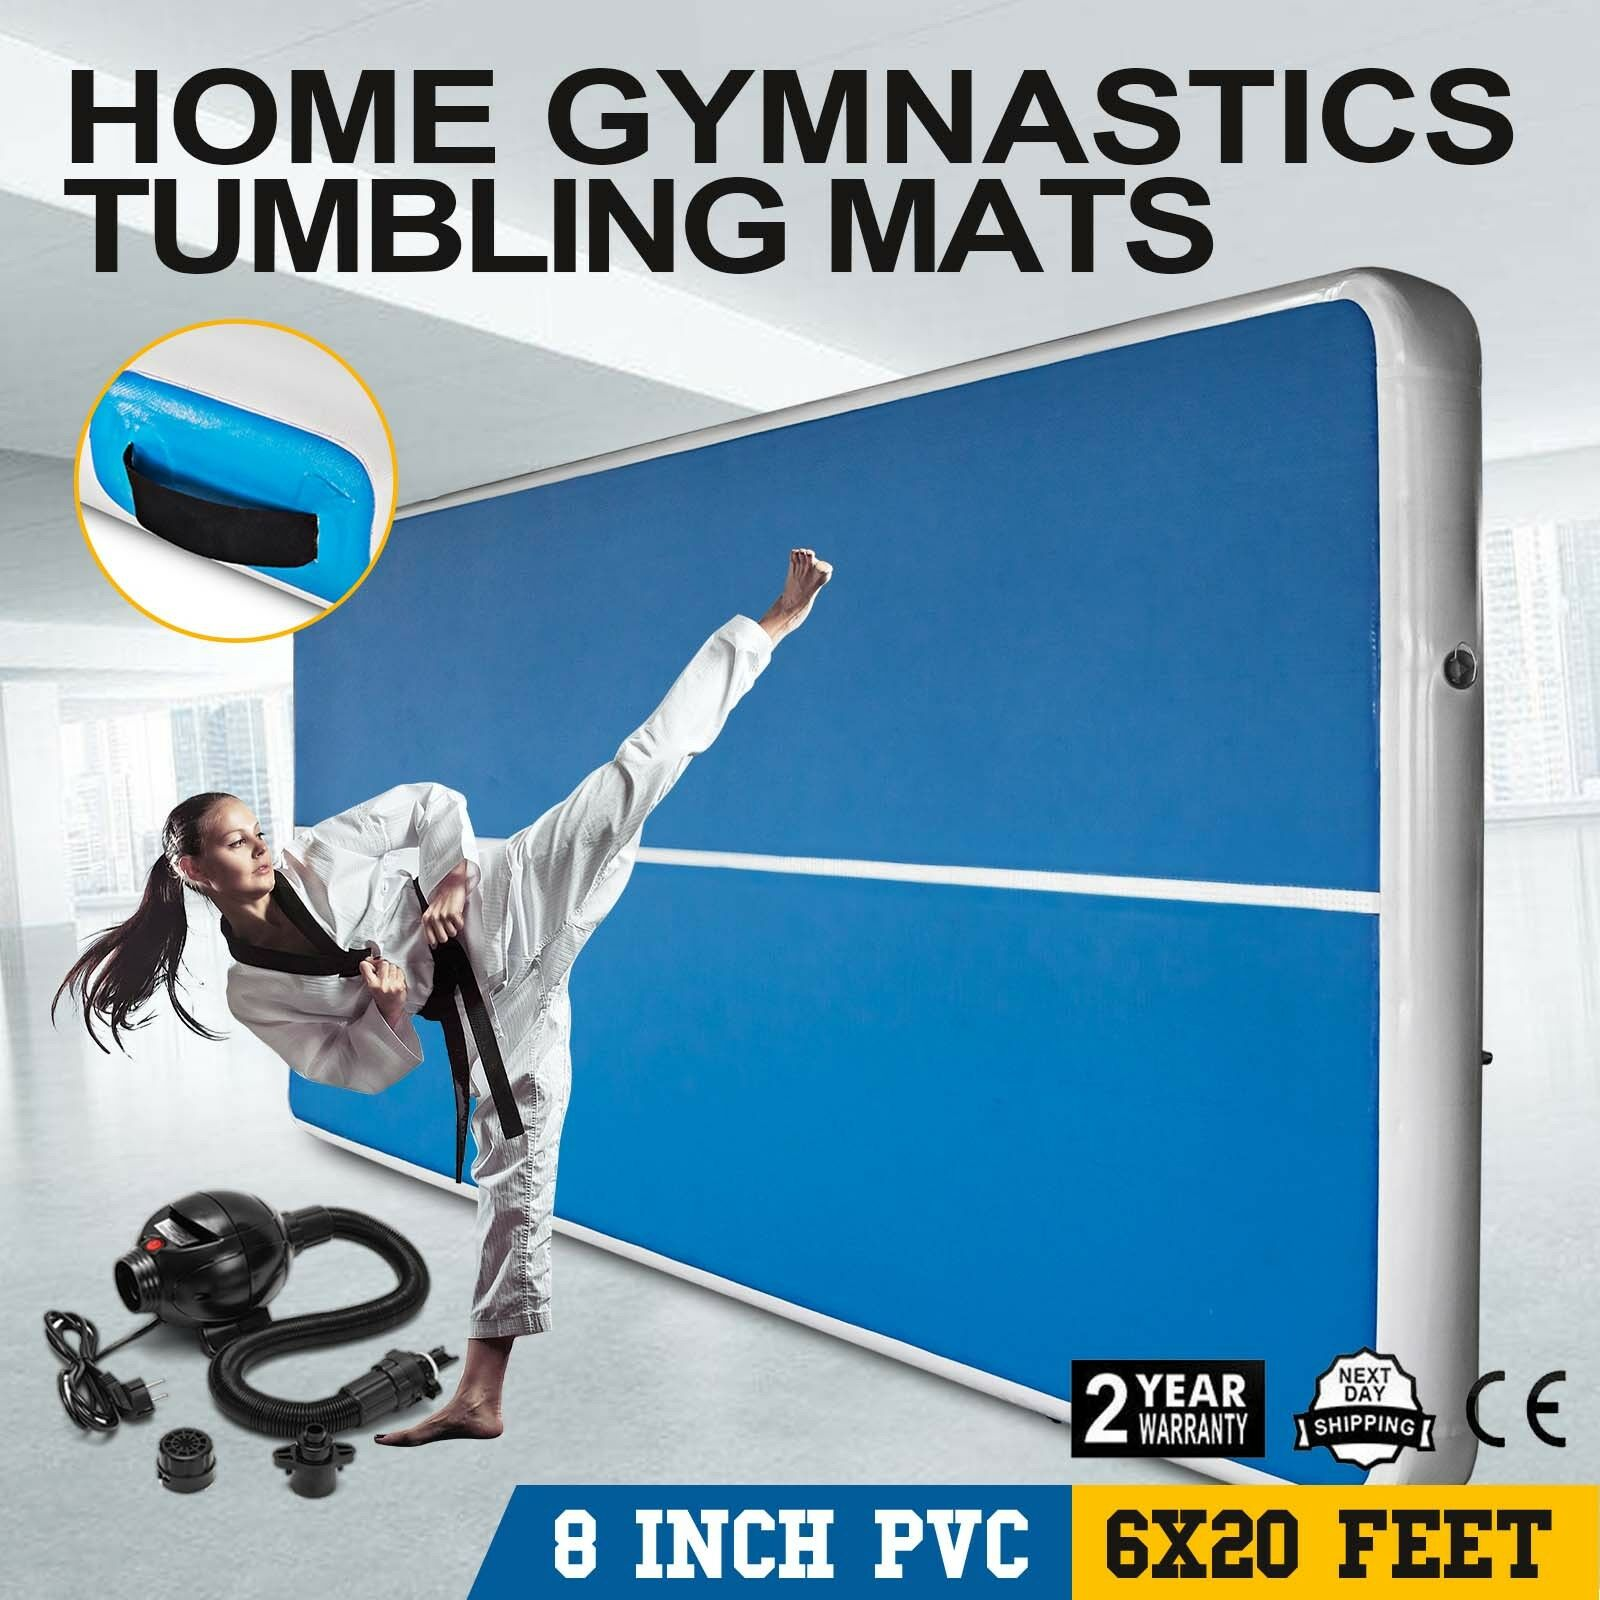 20x6Ft Inflatable Air Track Floor Home Gymnastics Tumbling Mat Sport Pad w/ Pump